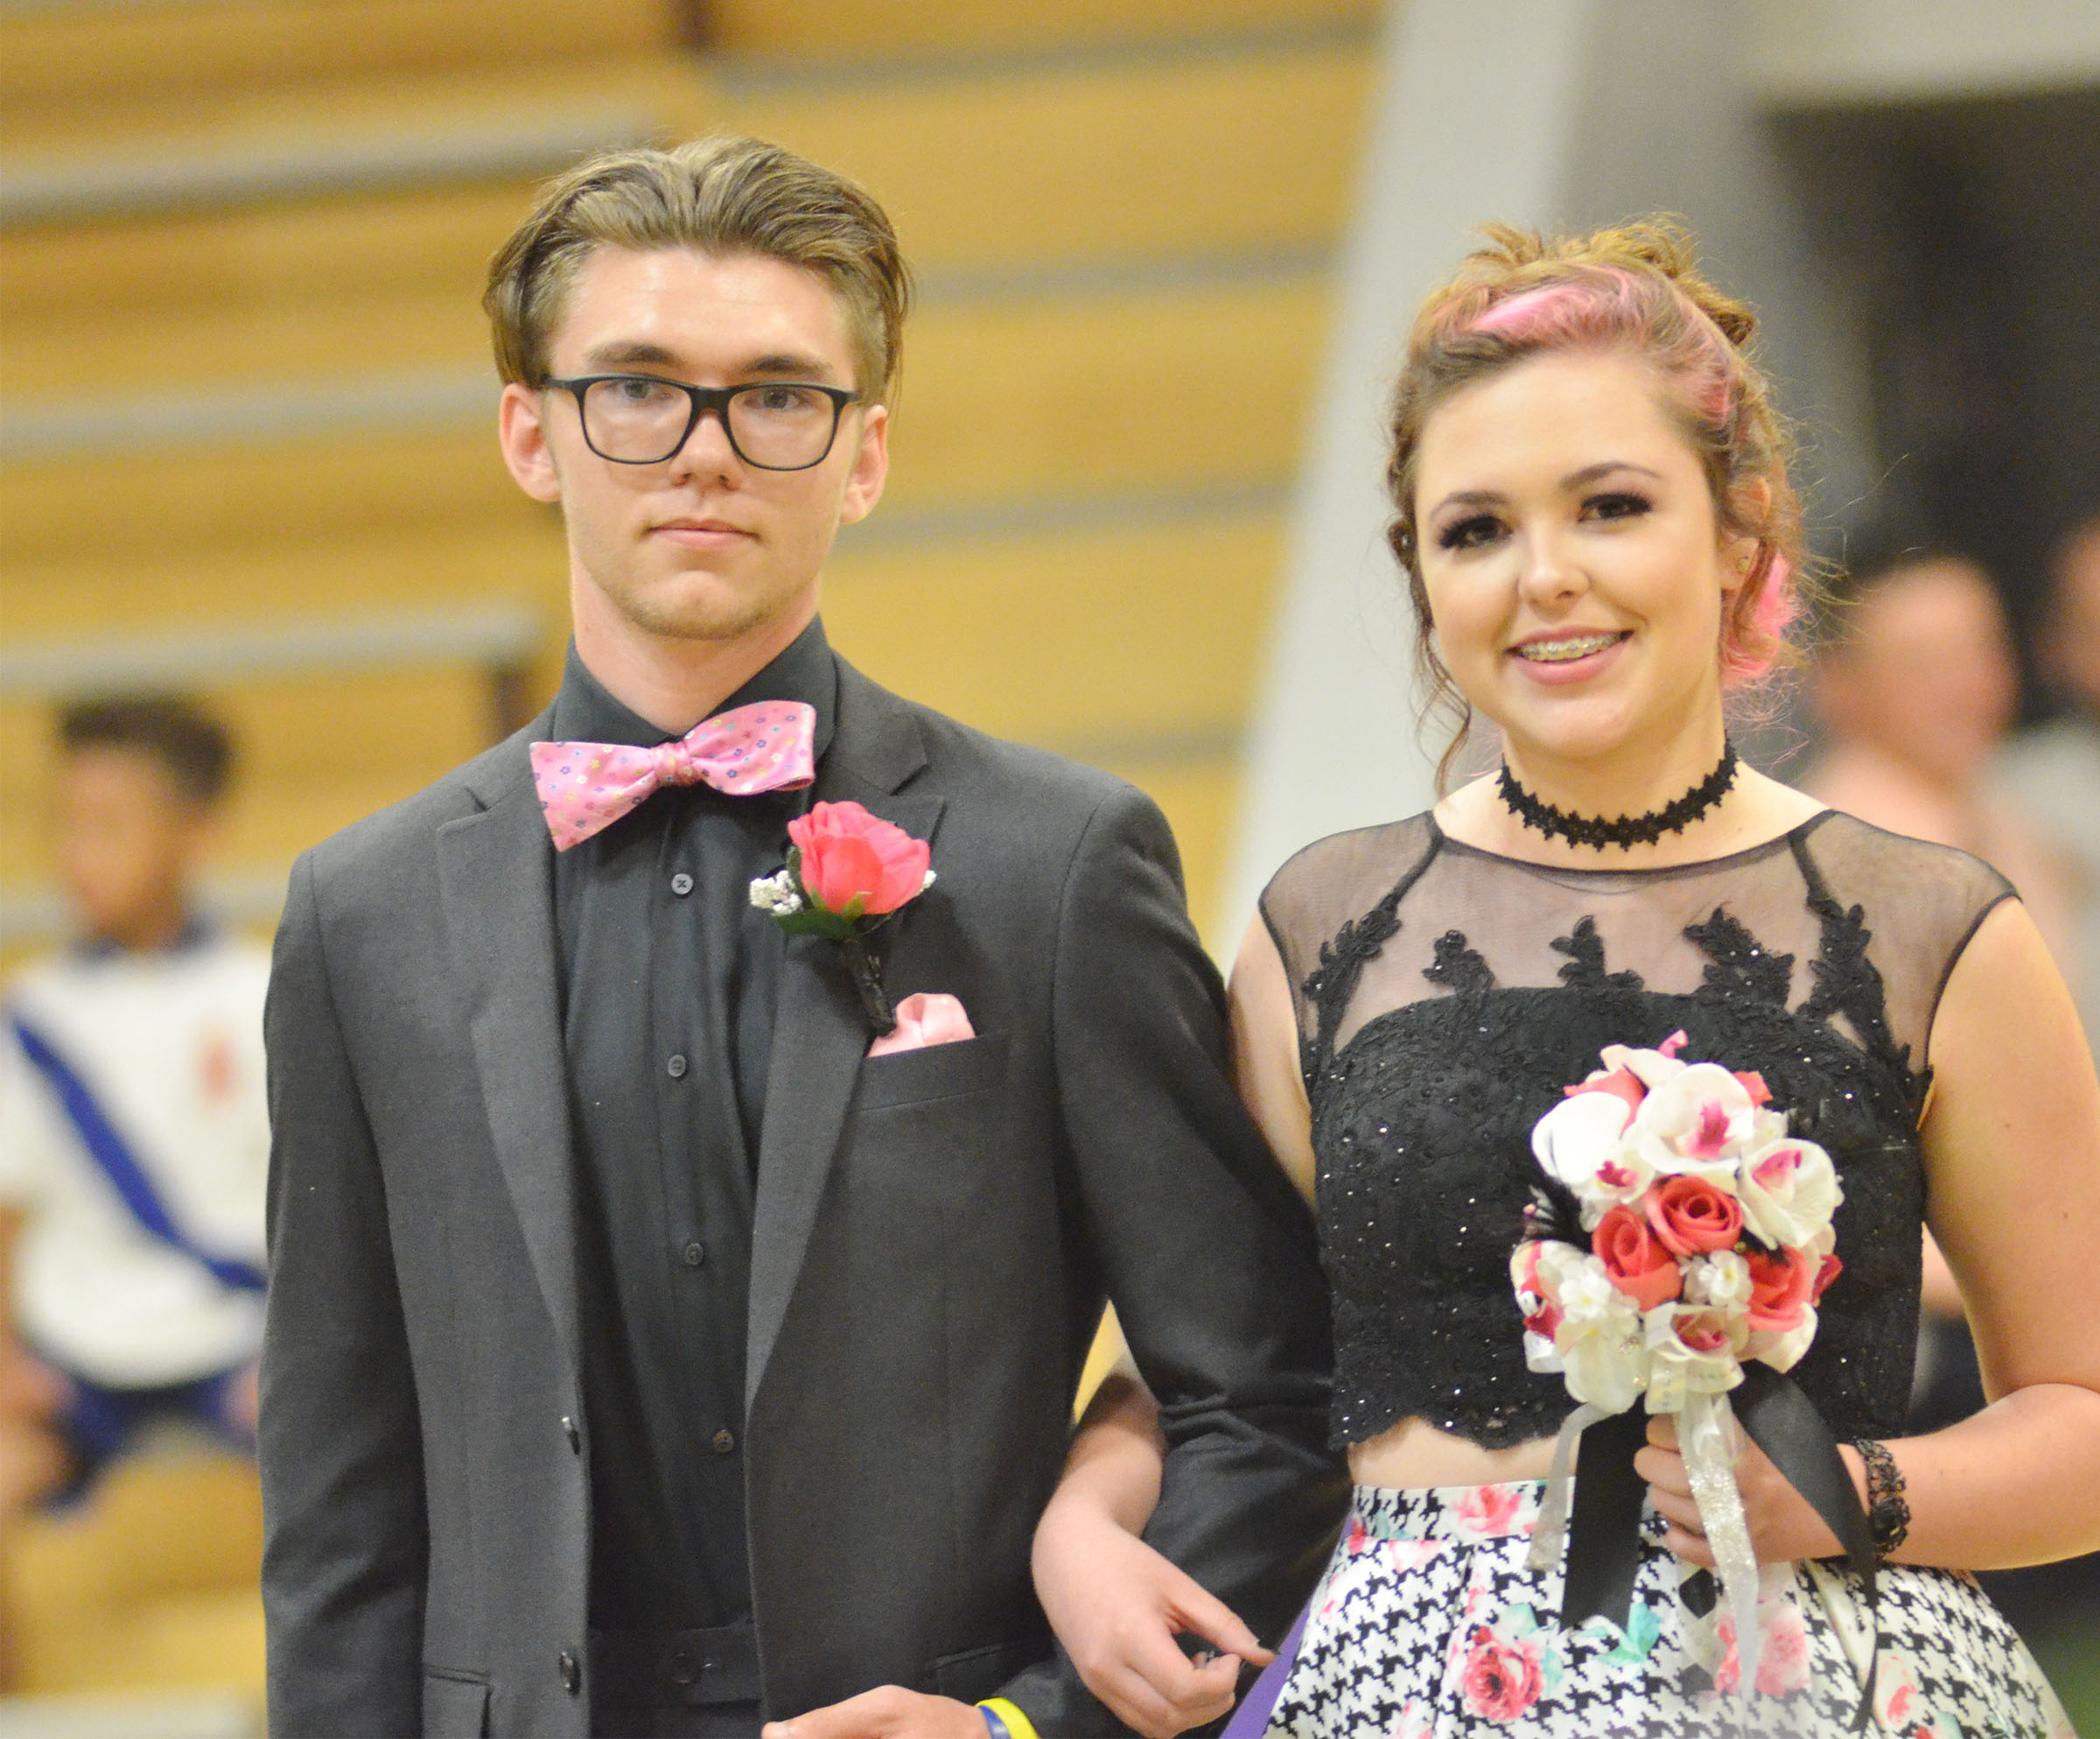 CHS junior Christian Berry and his date Jesslynne Mann smile at prom walk.